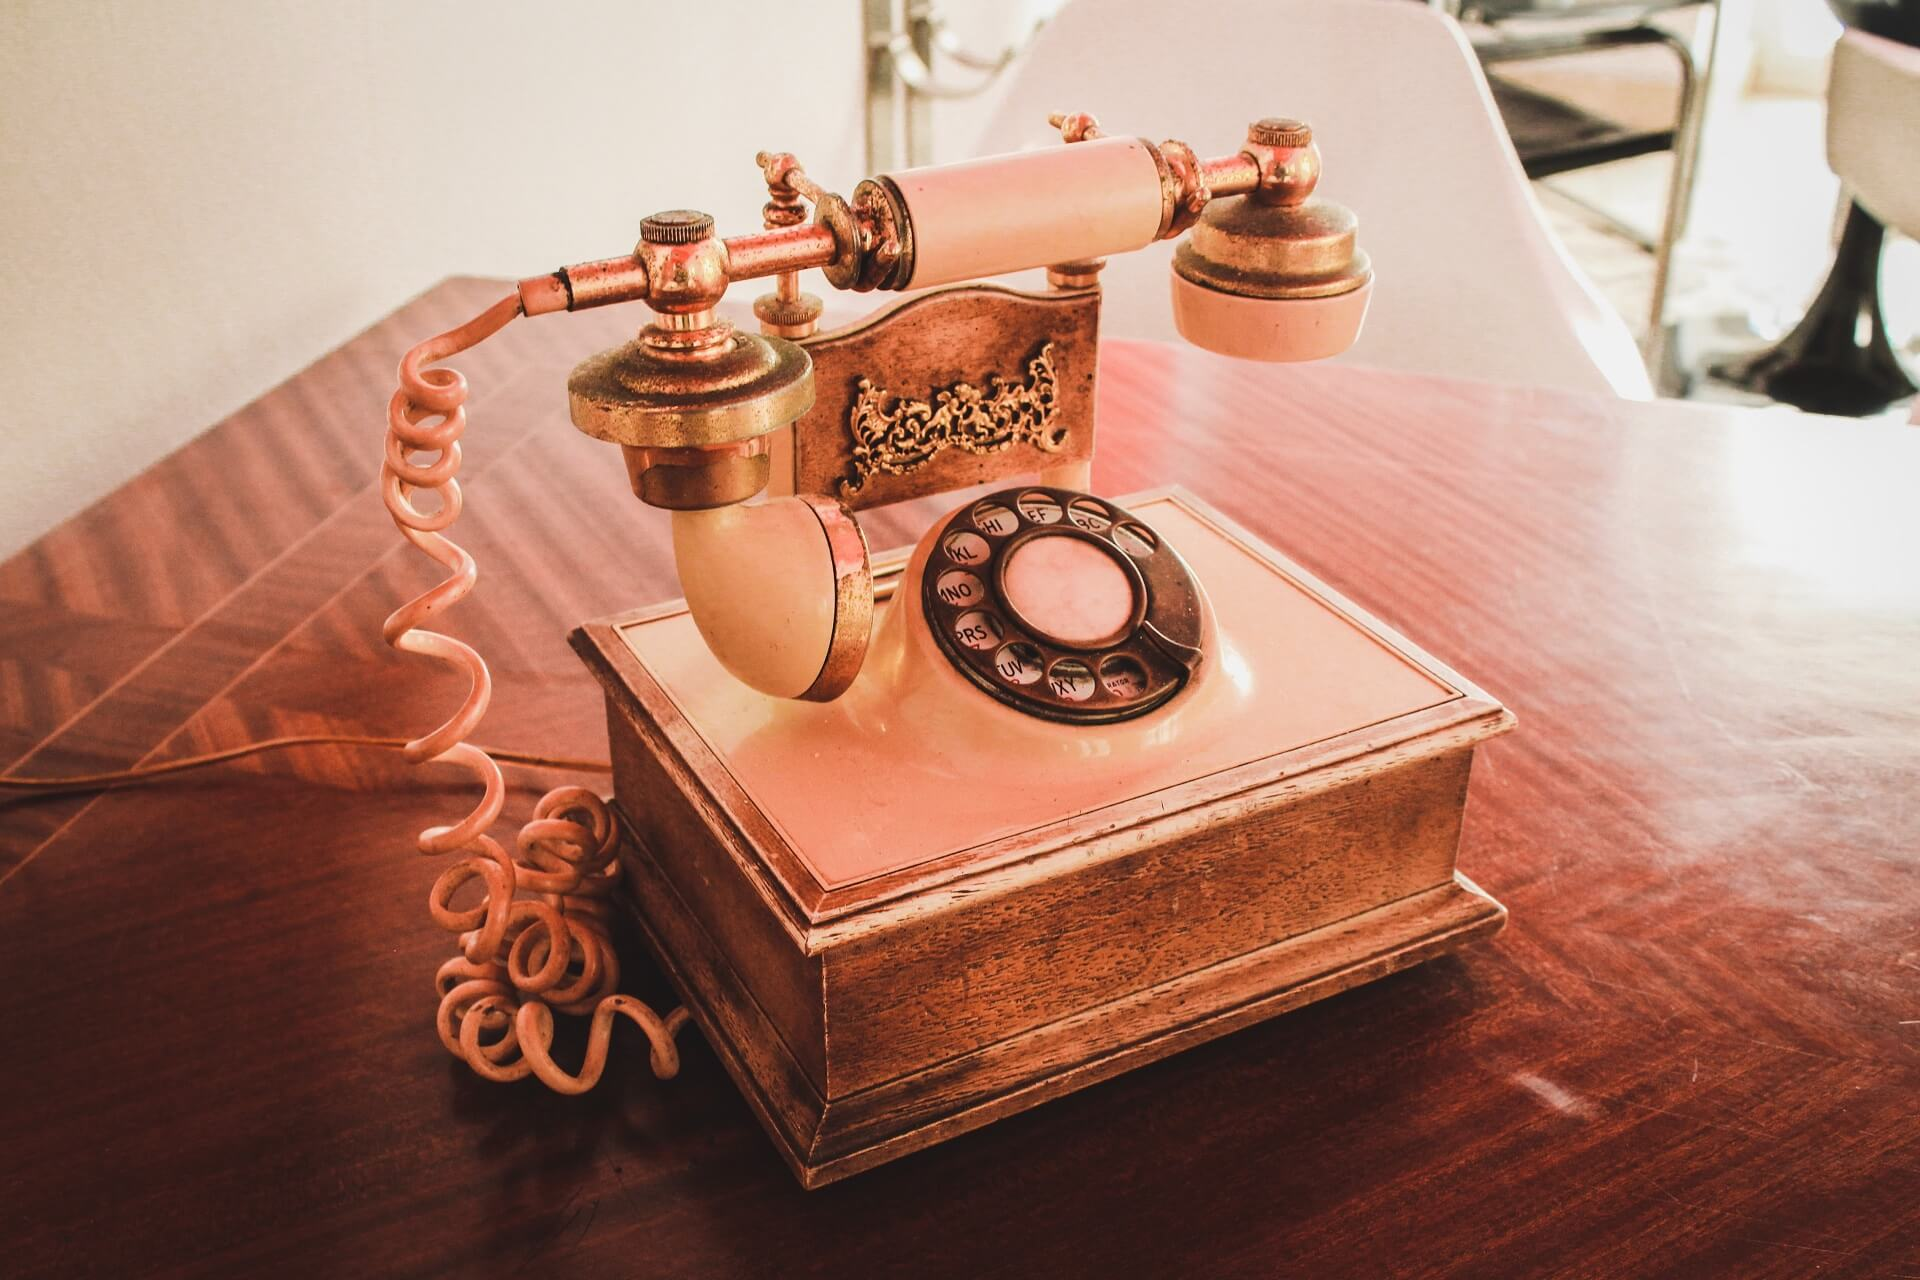 Internal communication old fashioned telephone